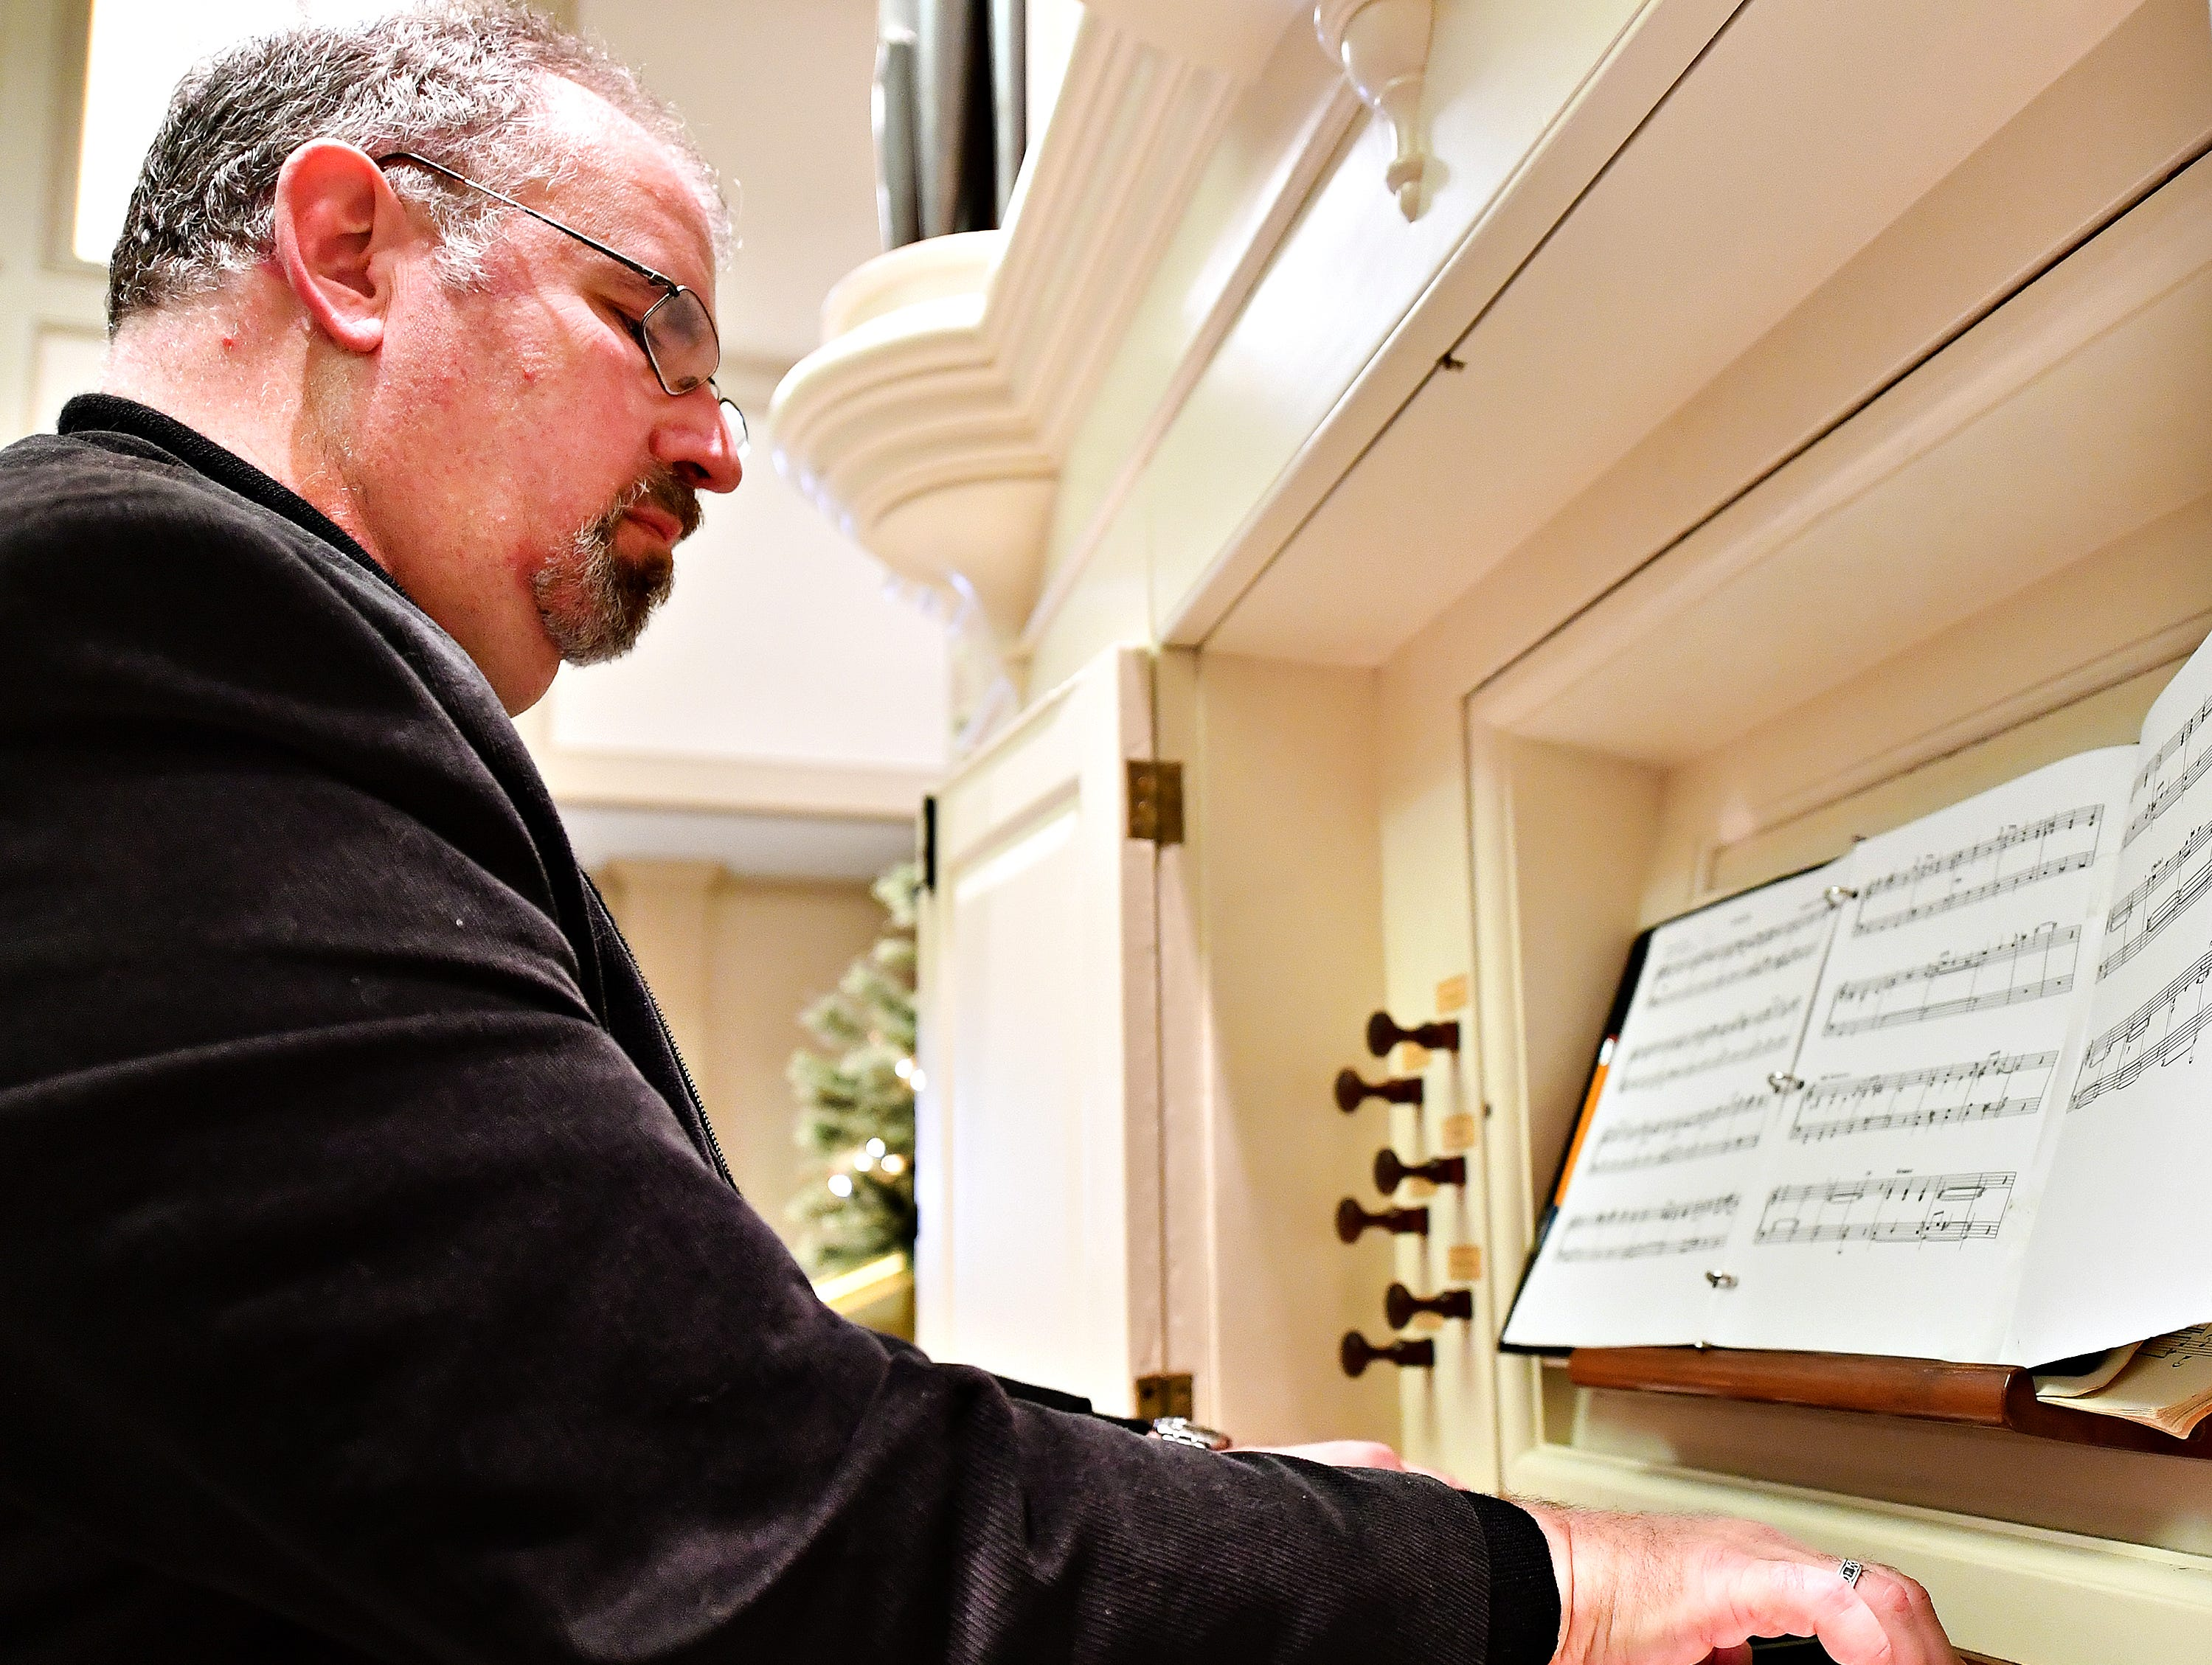 Victor Fields, of Springfield Township, plays the David Tannenberg Organ during a free performance on Giving Tuesday at York County History Center in York City, Tuesday, Nov. 27, 2018. Dawn J. Sagert photo